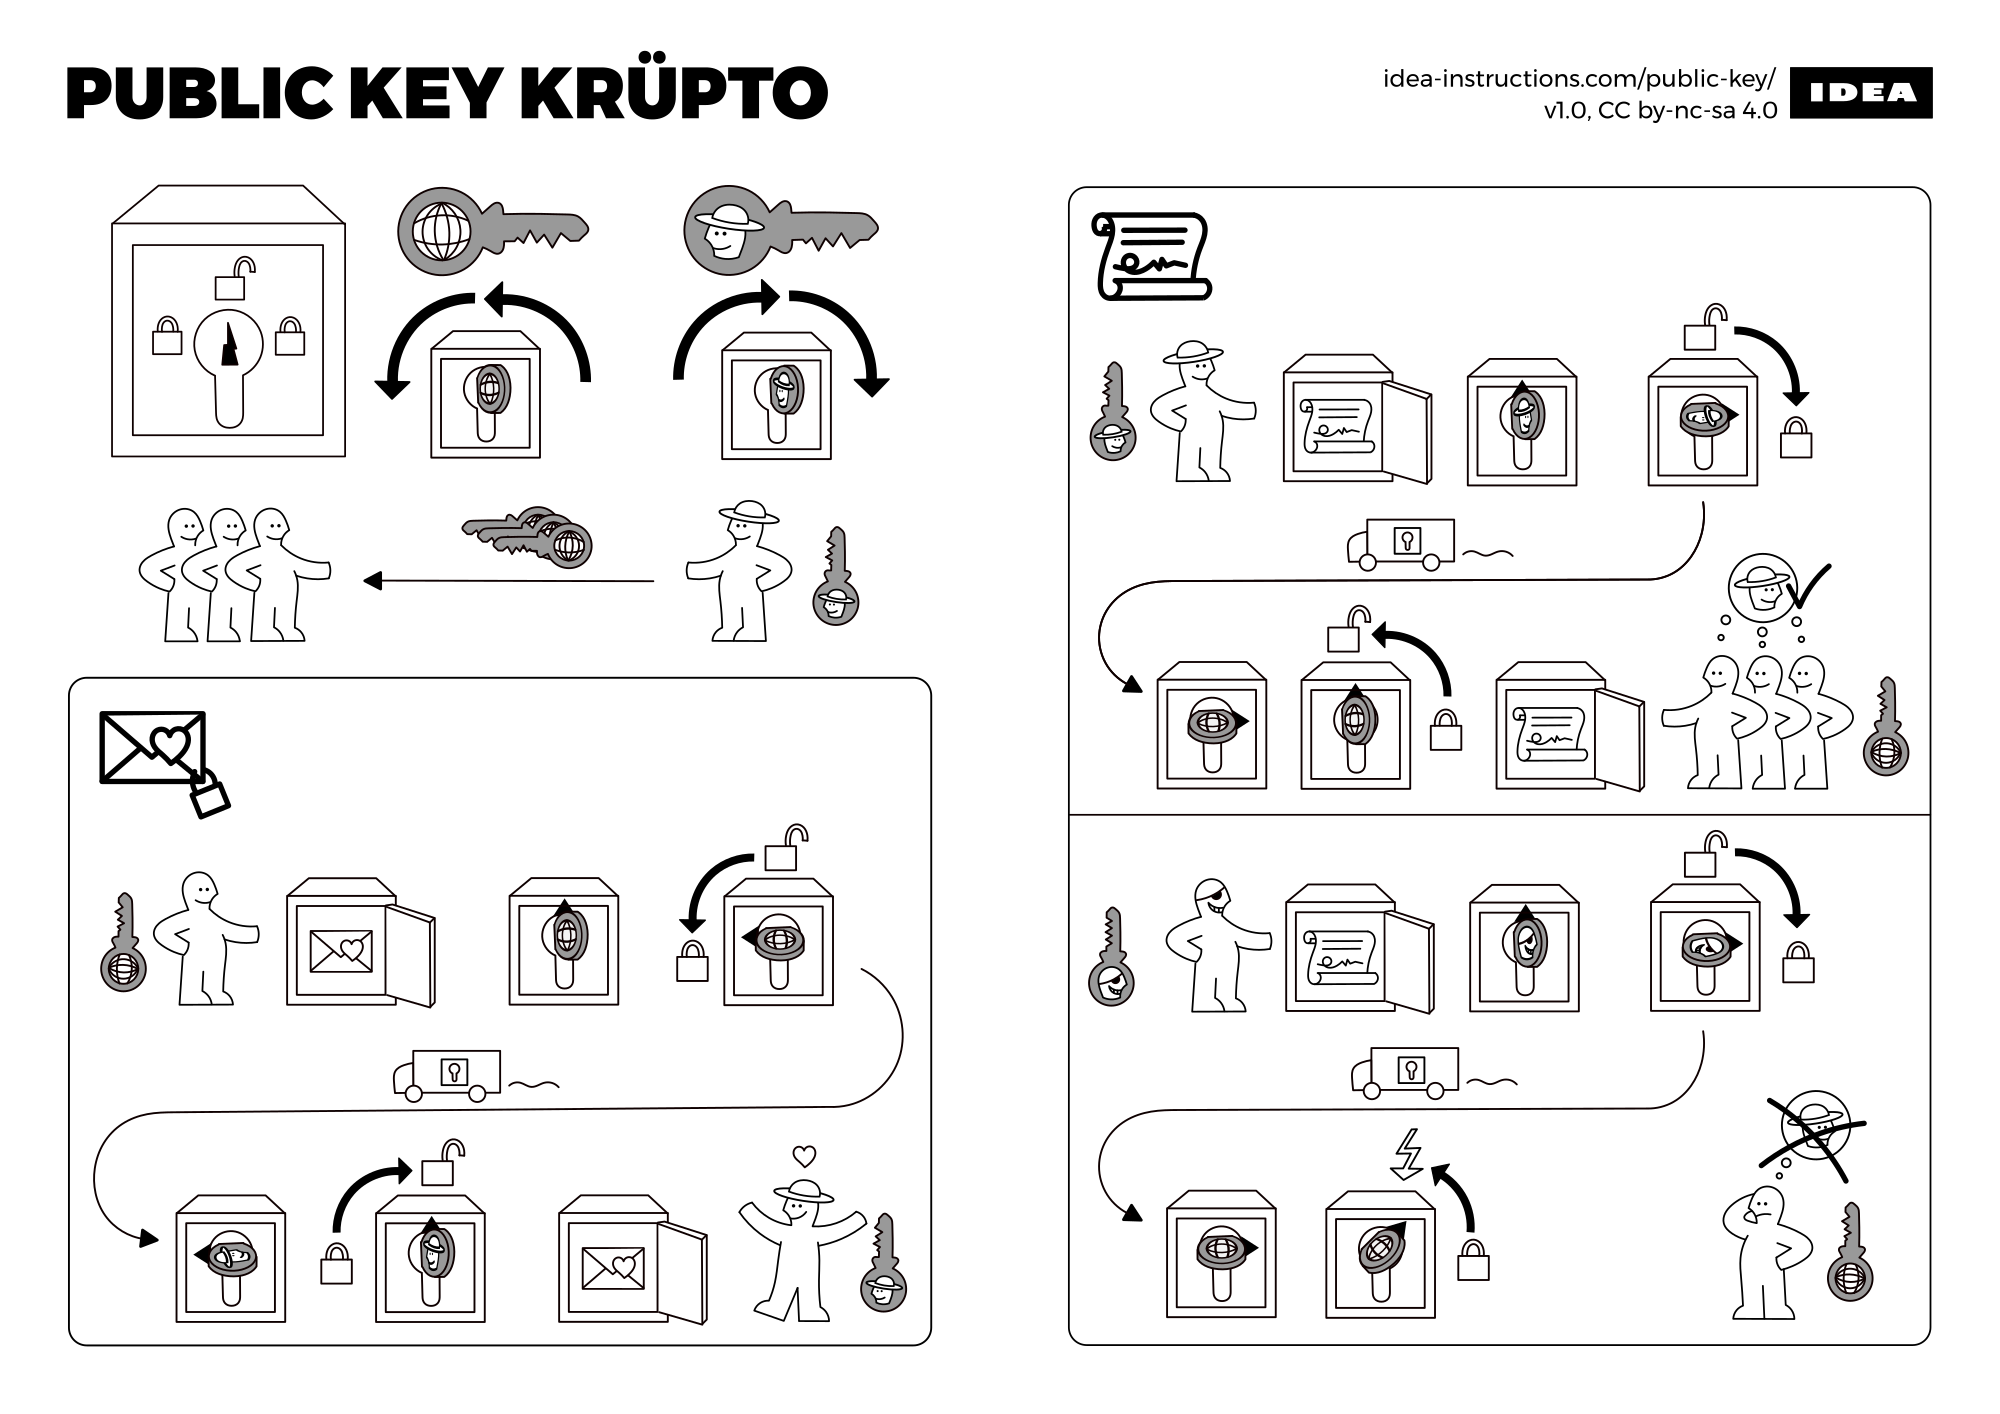 A crypto primer in the form of Ikea instructions